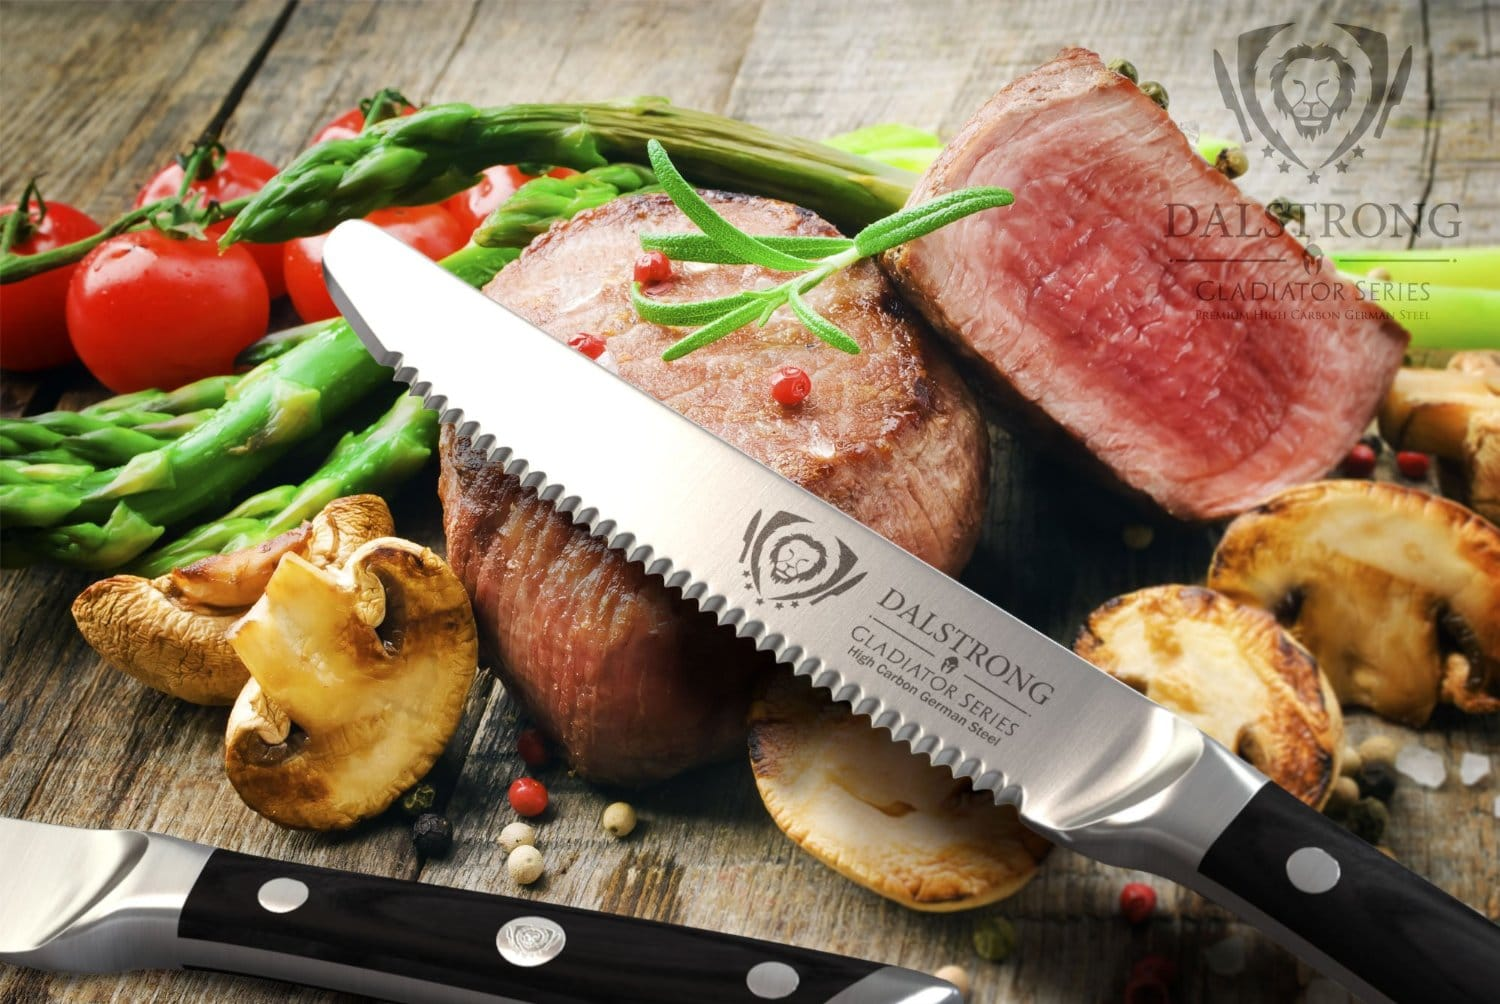 Steak-Knives-dalstrong-5